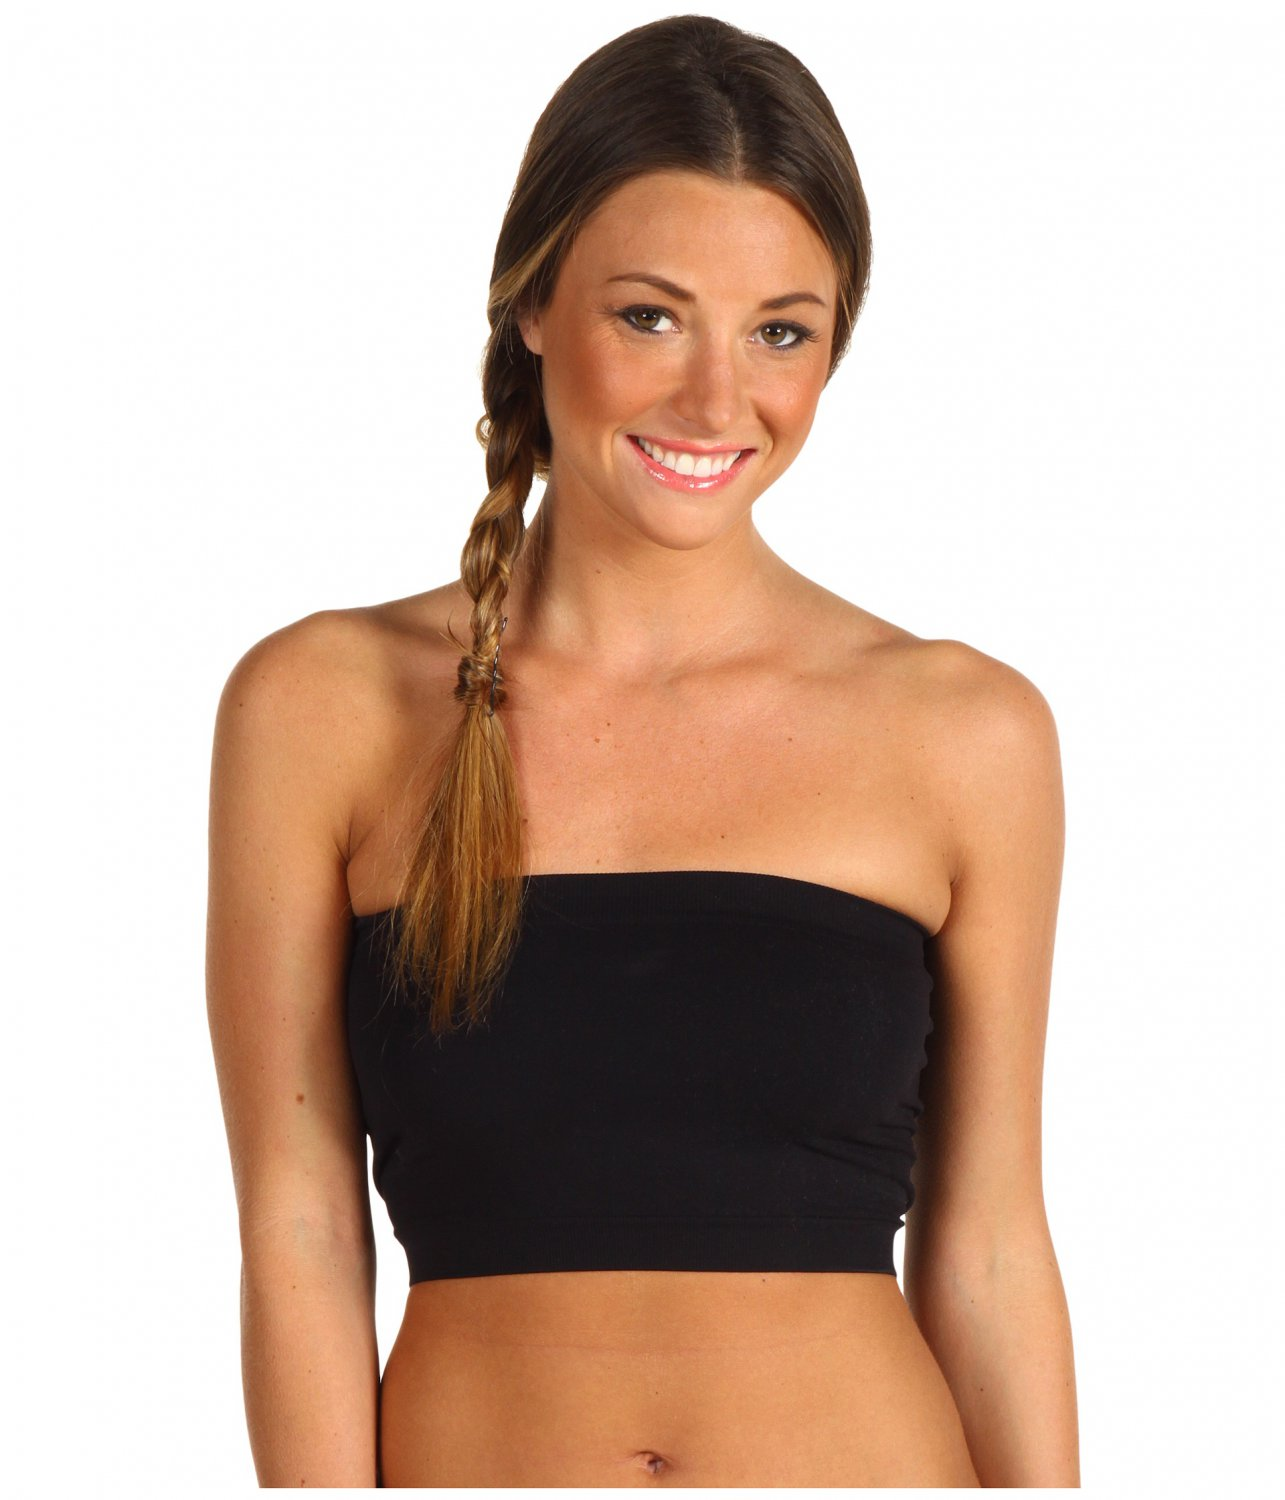 Buy Women's Stretch Seamless Tube Top Bandeau Super 2 Pack (One Size, Black/Nude) and other Everyday Bras at nazhatie-skachat.gq Our wide selection is elegible for free shipping and free returns/5(95).